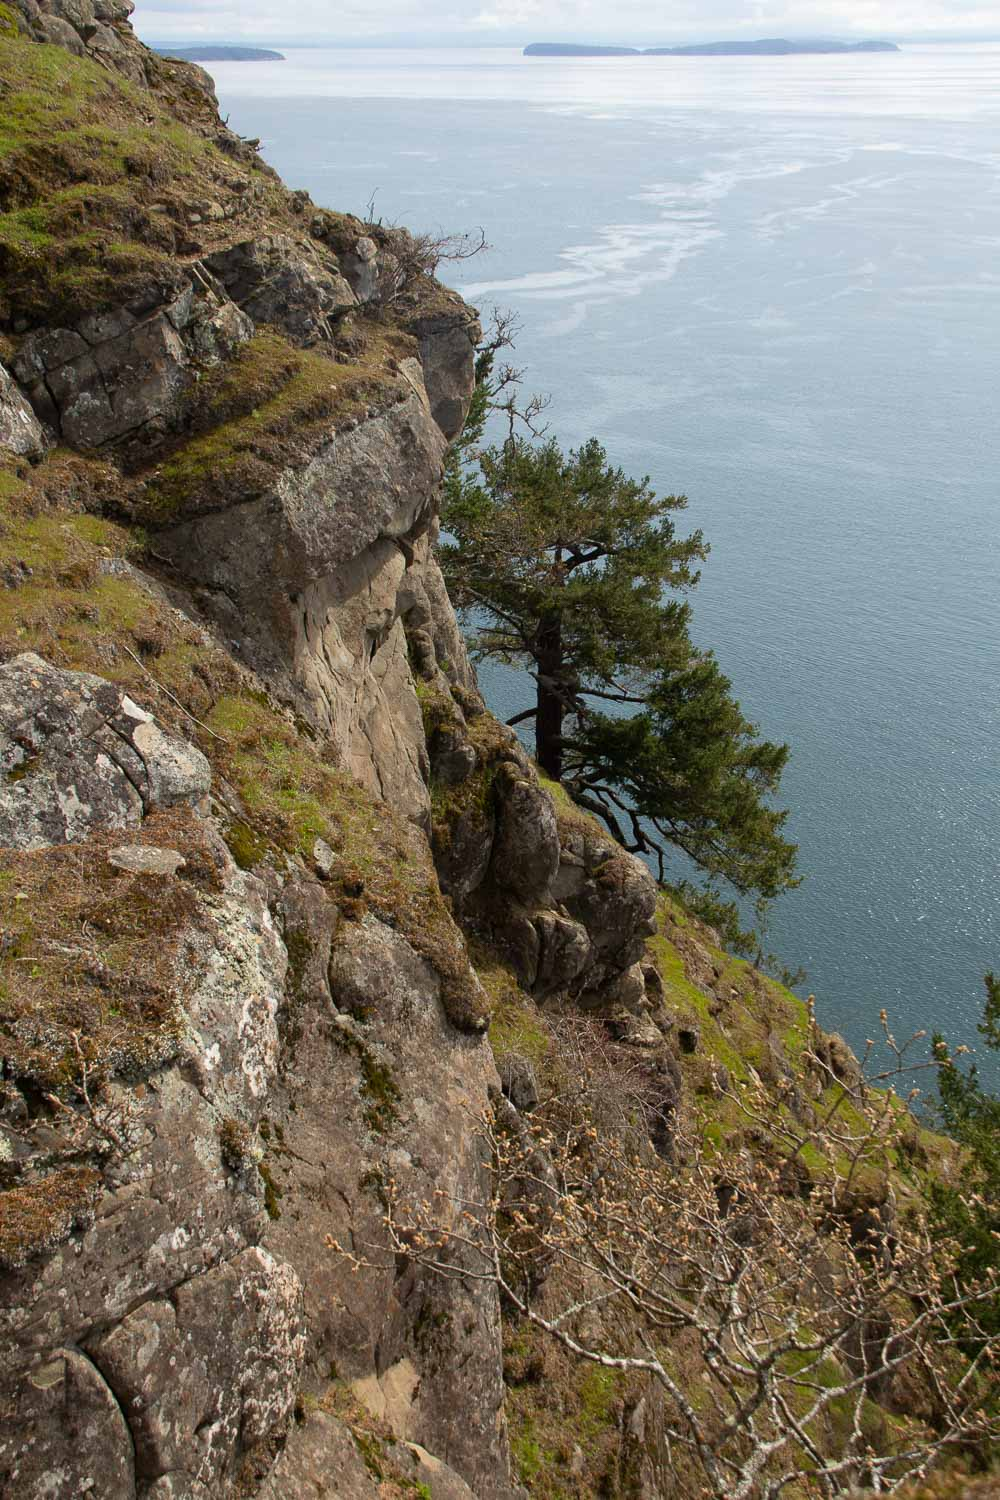 View from Monarch Head